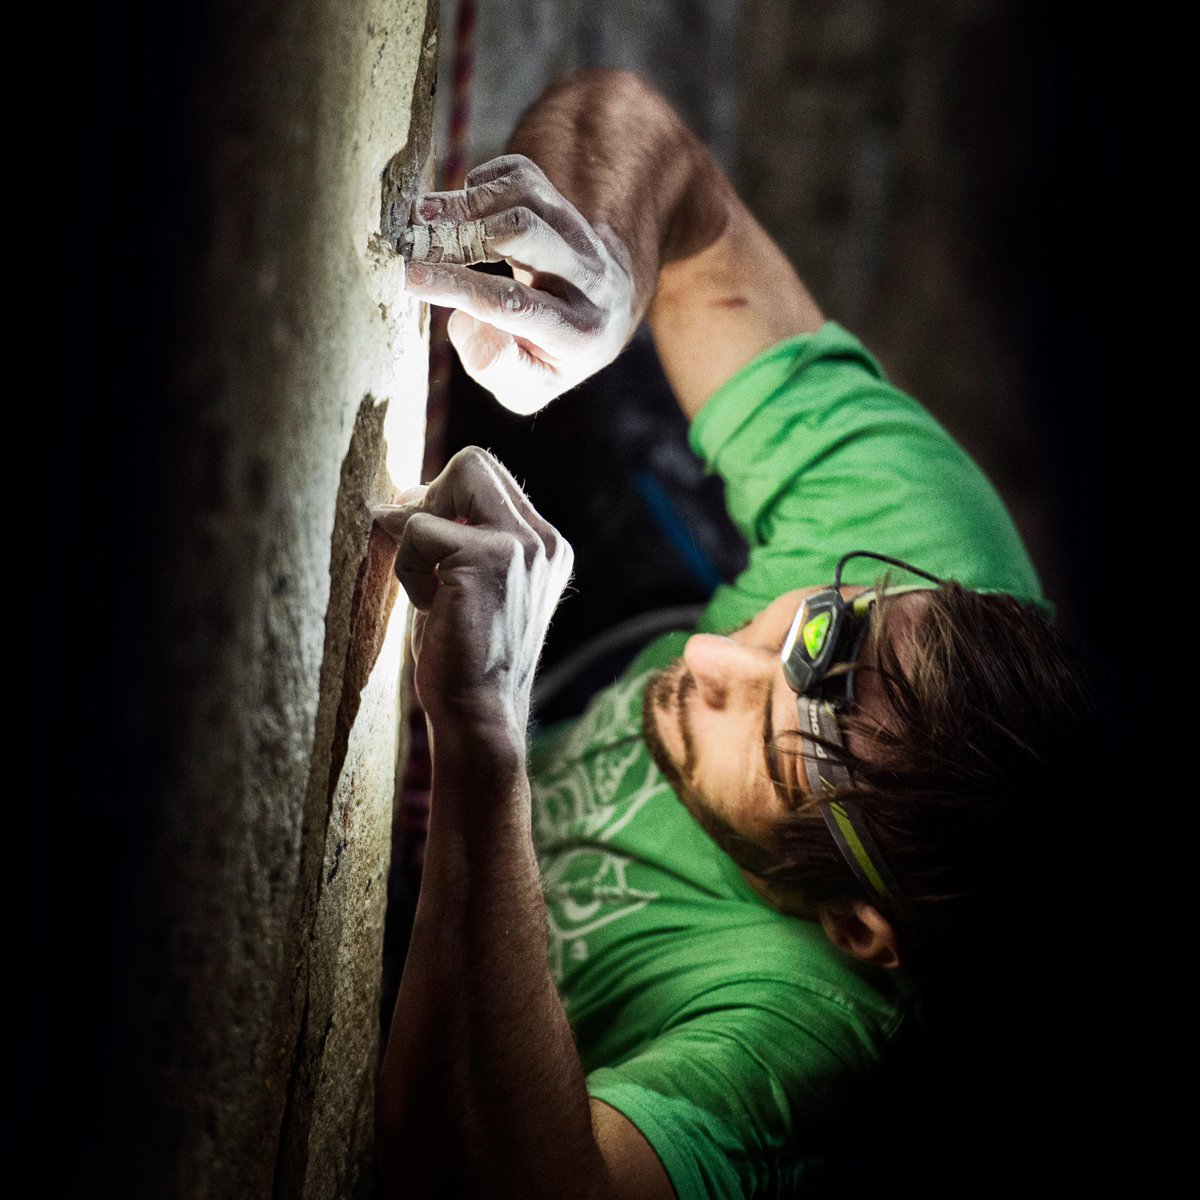 The sharpest holds on the #DawnWall. @kjorgeson climbing his heart out last night. So inspired by this determination http://t.co/6OTJSjPk6e